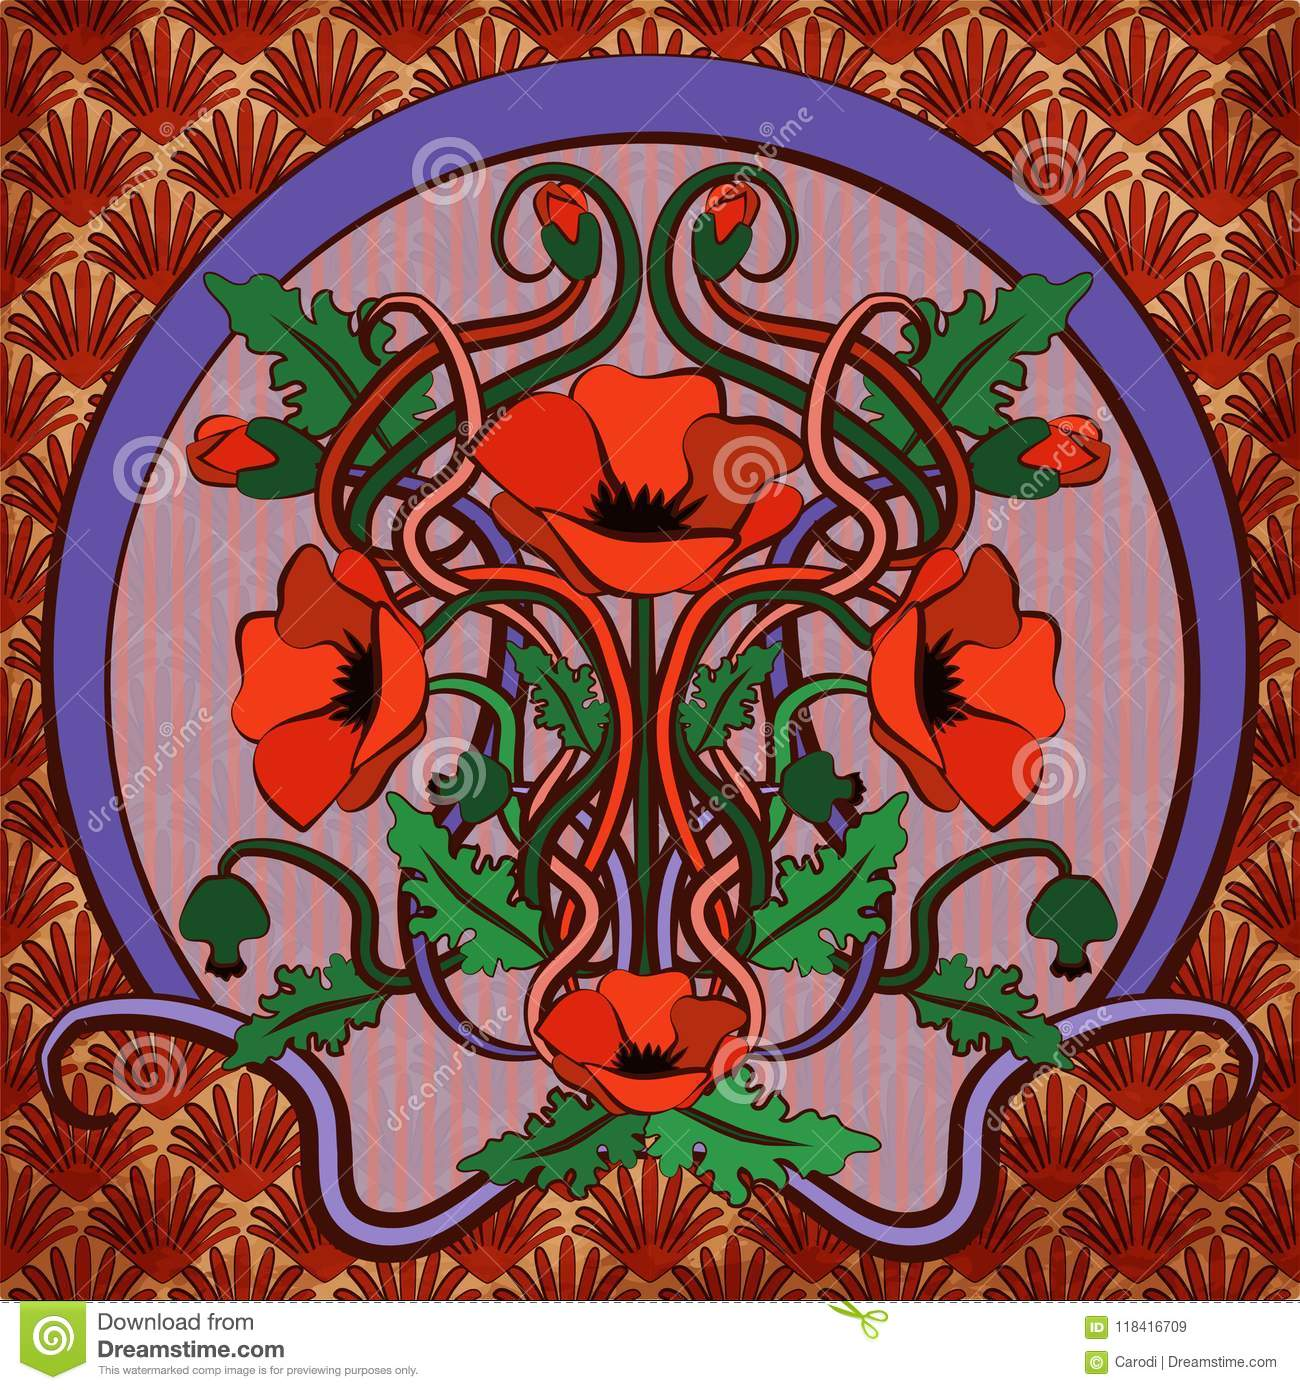 Art Nouveau Inspired California Poppy By Mason Larose: Greeting Card With Poppy Flowers In Art Nouveau Style